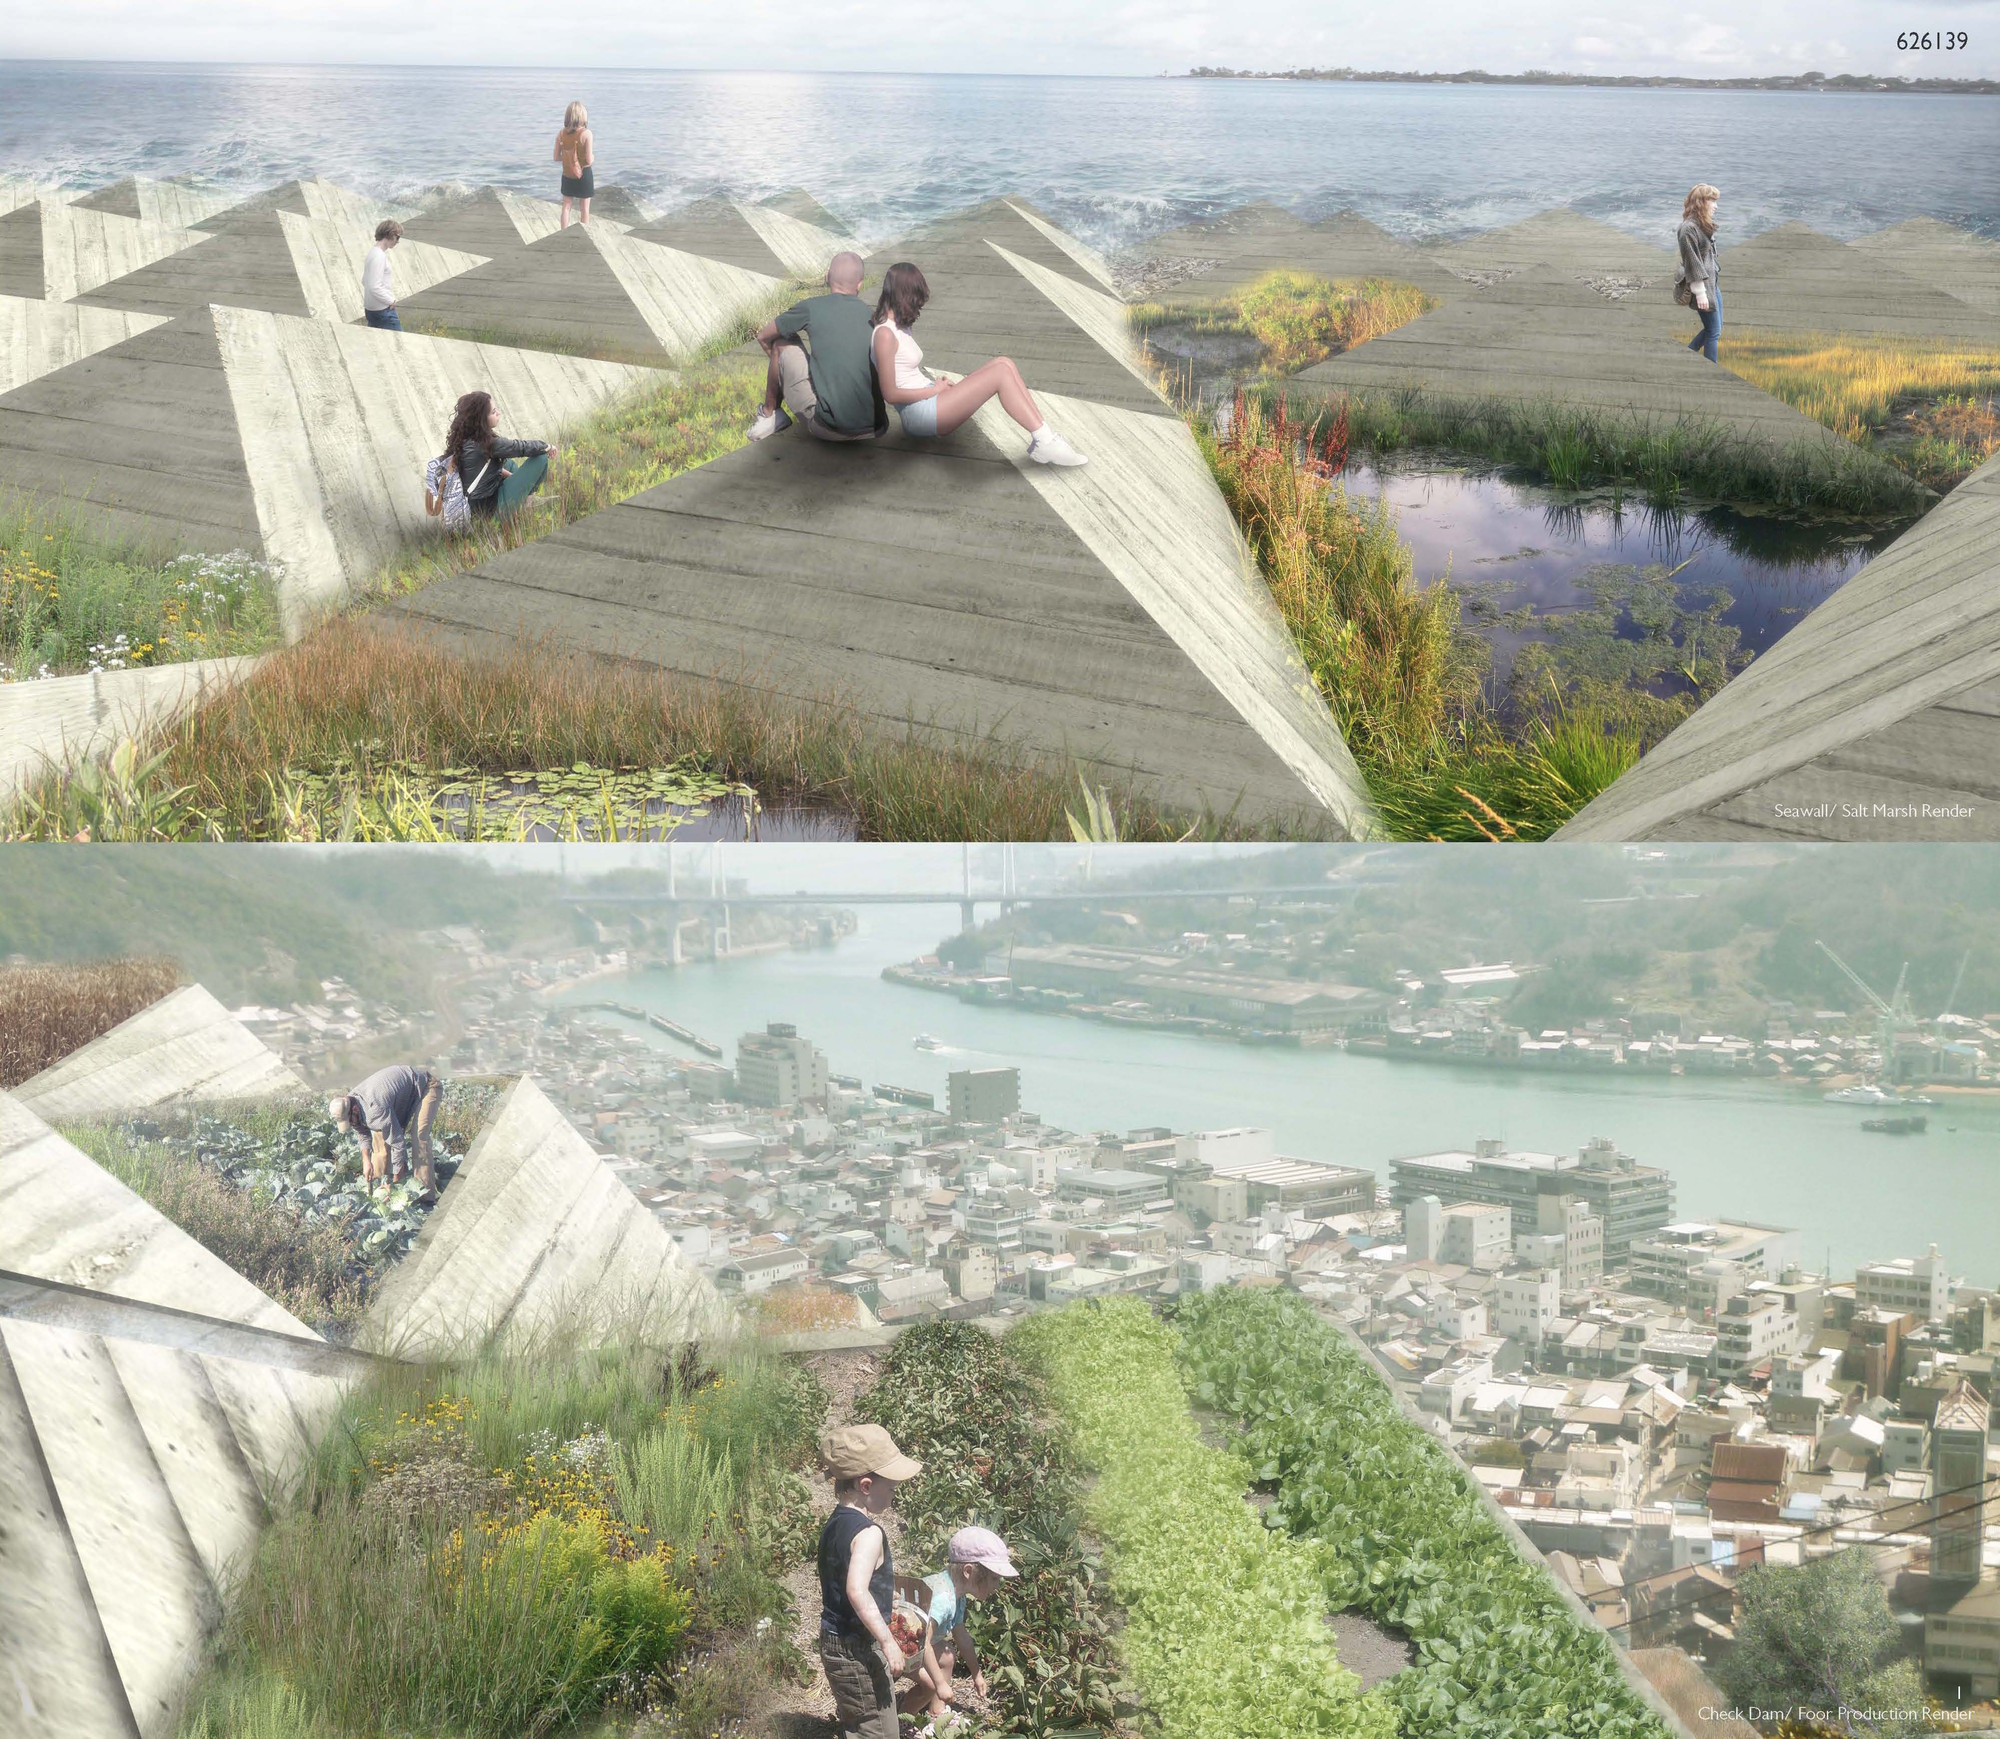 Japanese Landscape Architecture Winners Announced For Architecture For Humanity Vancouvers Next